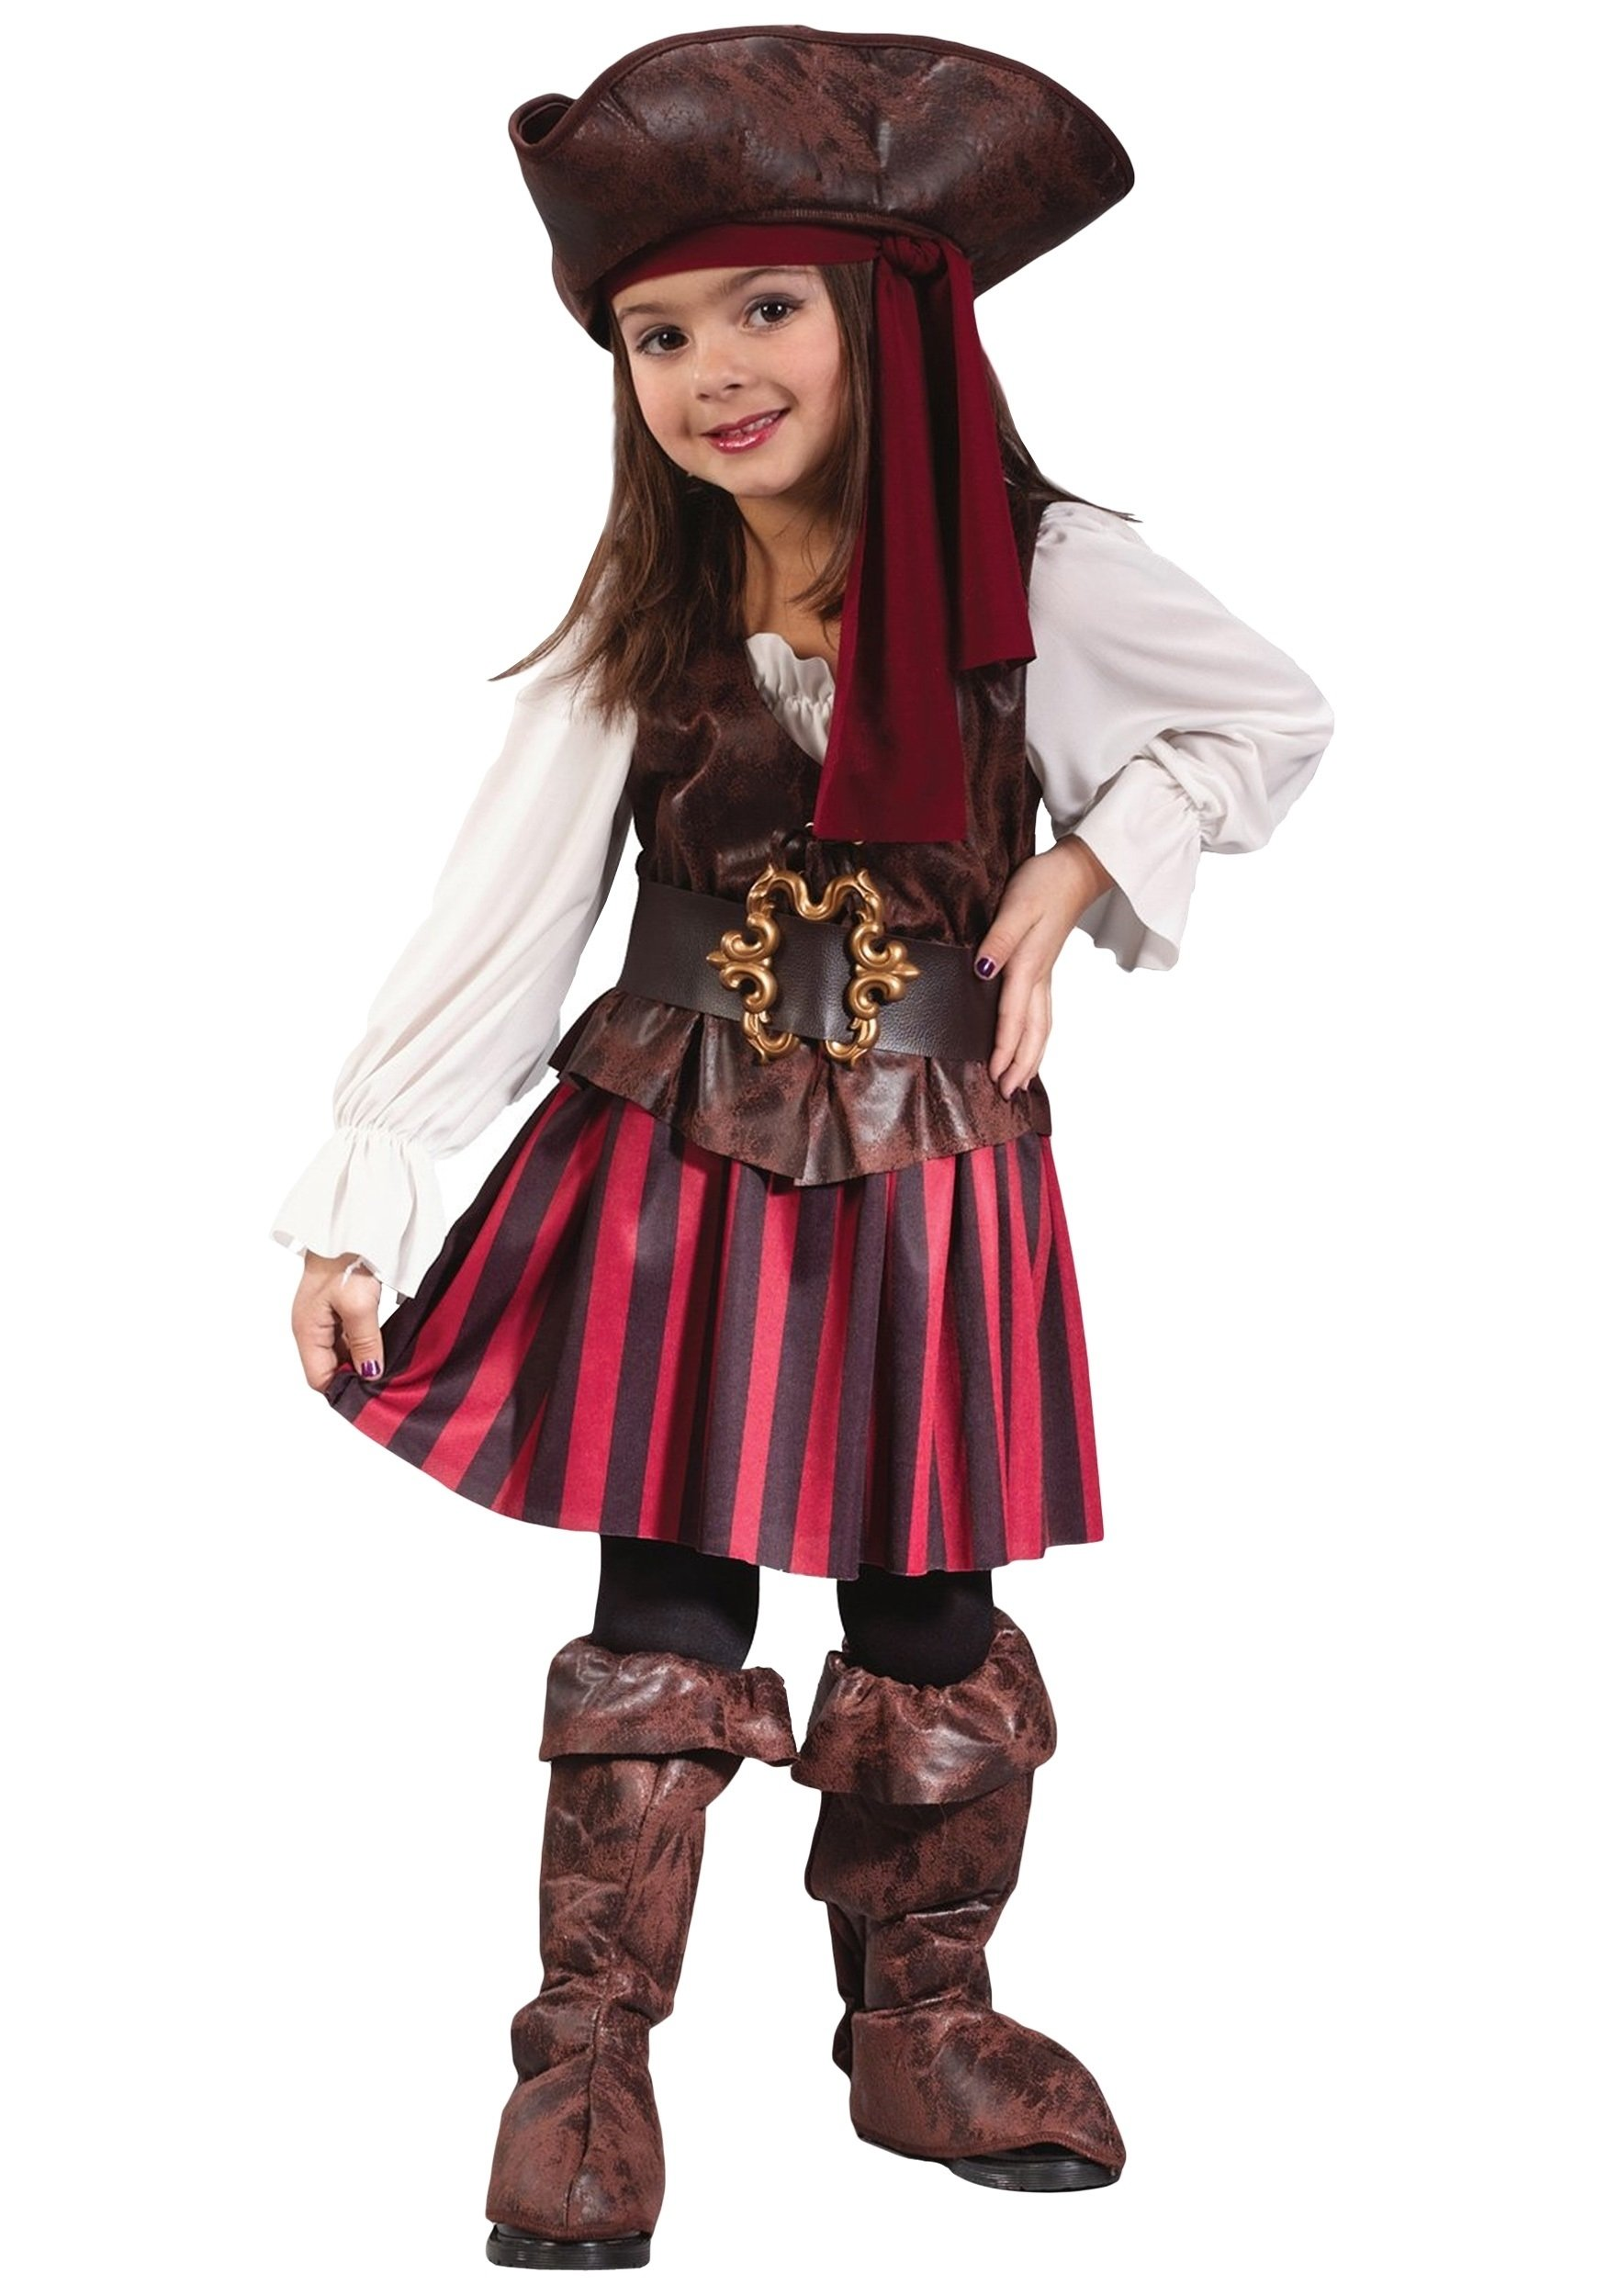 10 Great Pirate Costume Ideas For Kids girls toddler pirate costume toddler girl caribbean pirate costumes 2020